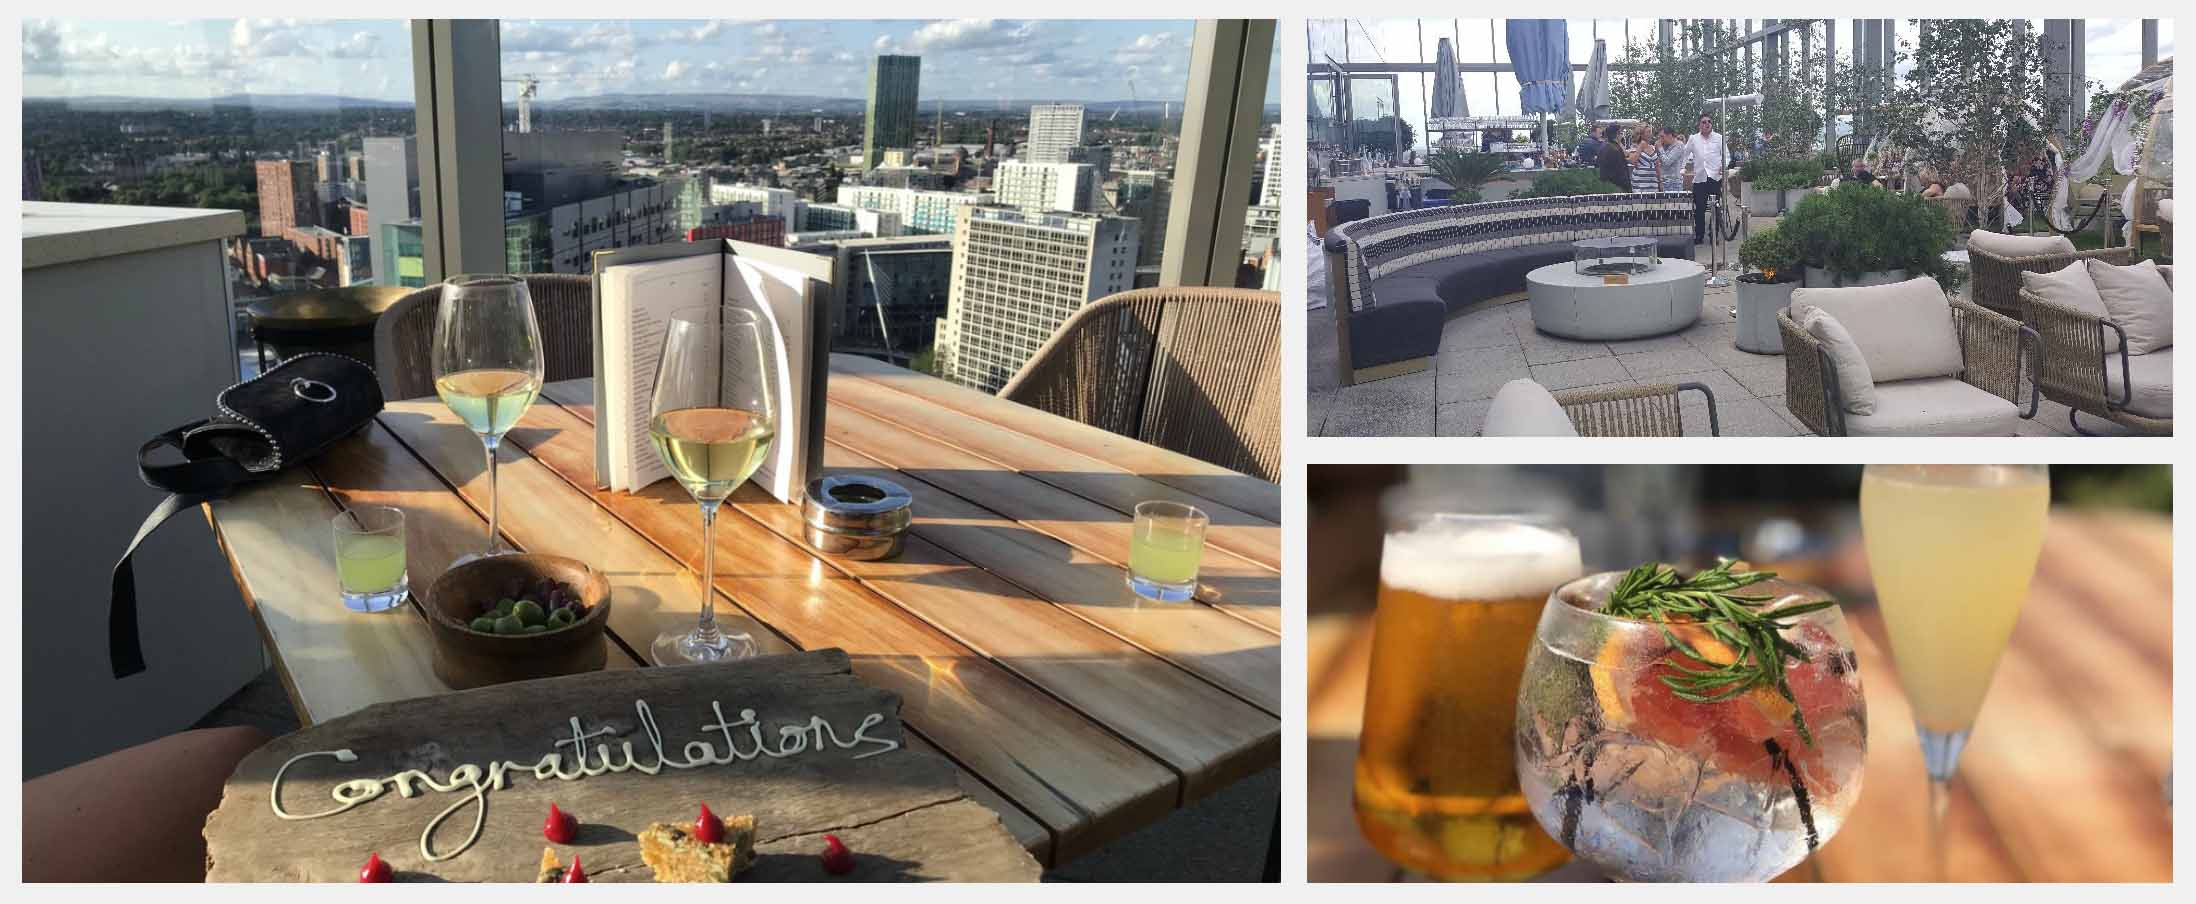 Best Beer Gardens in Manchester - 20 Stories